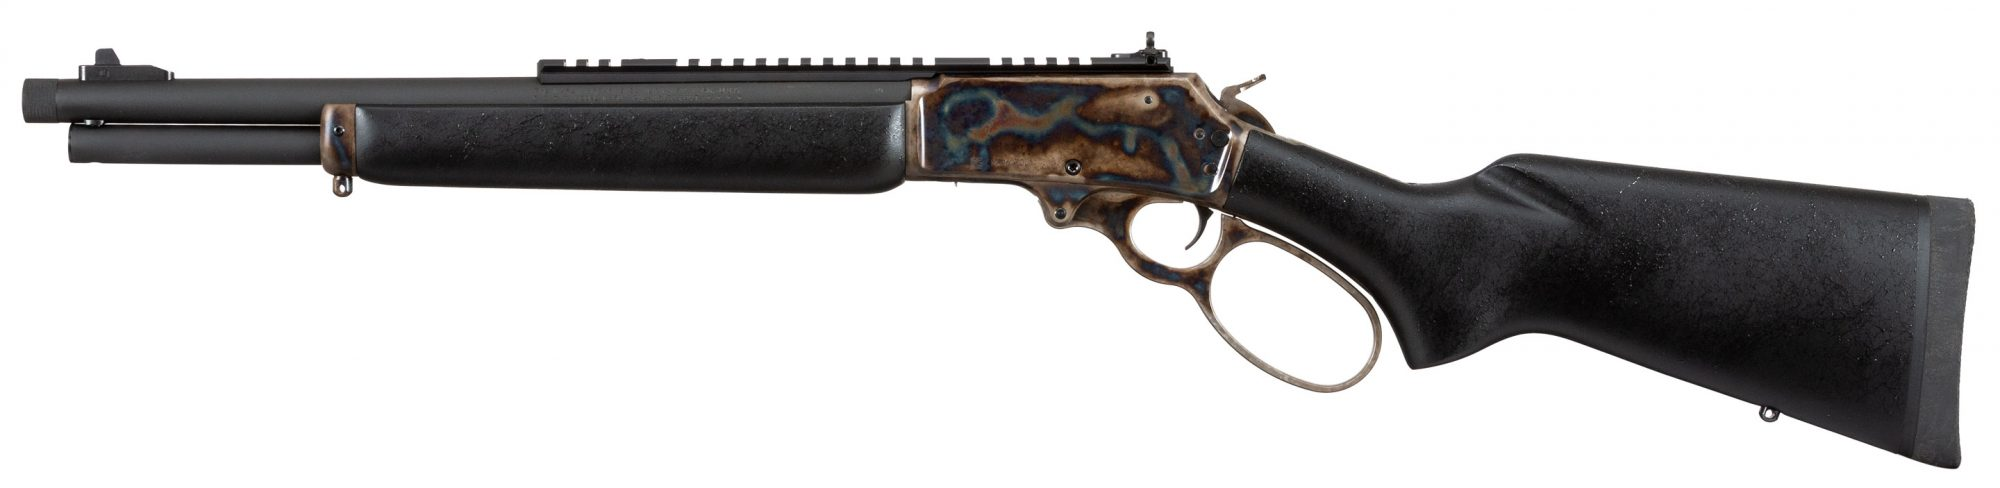 Photo of a Turnbull finished Marlin 1895 Dark, featuring bone charcoal color case hardening by Turnbull Restoration of Bloomfield, NY